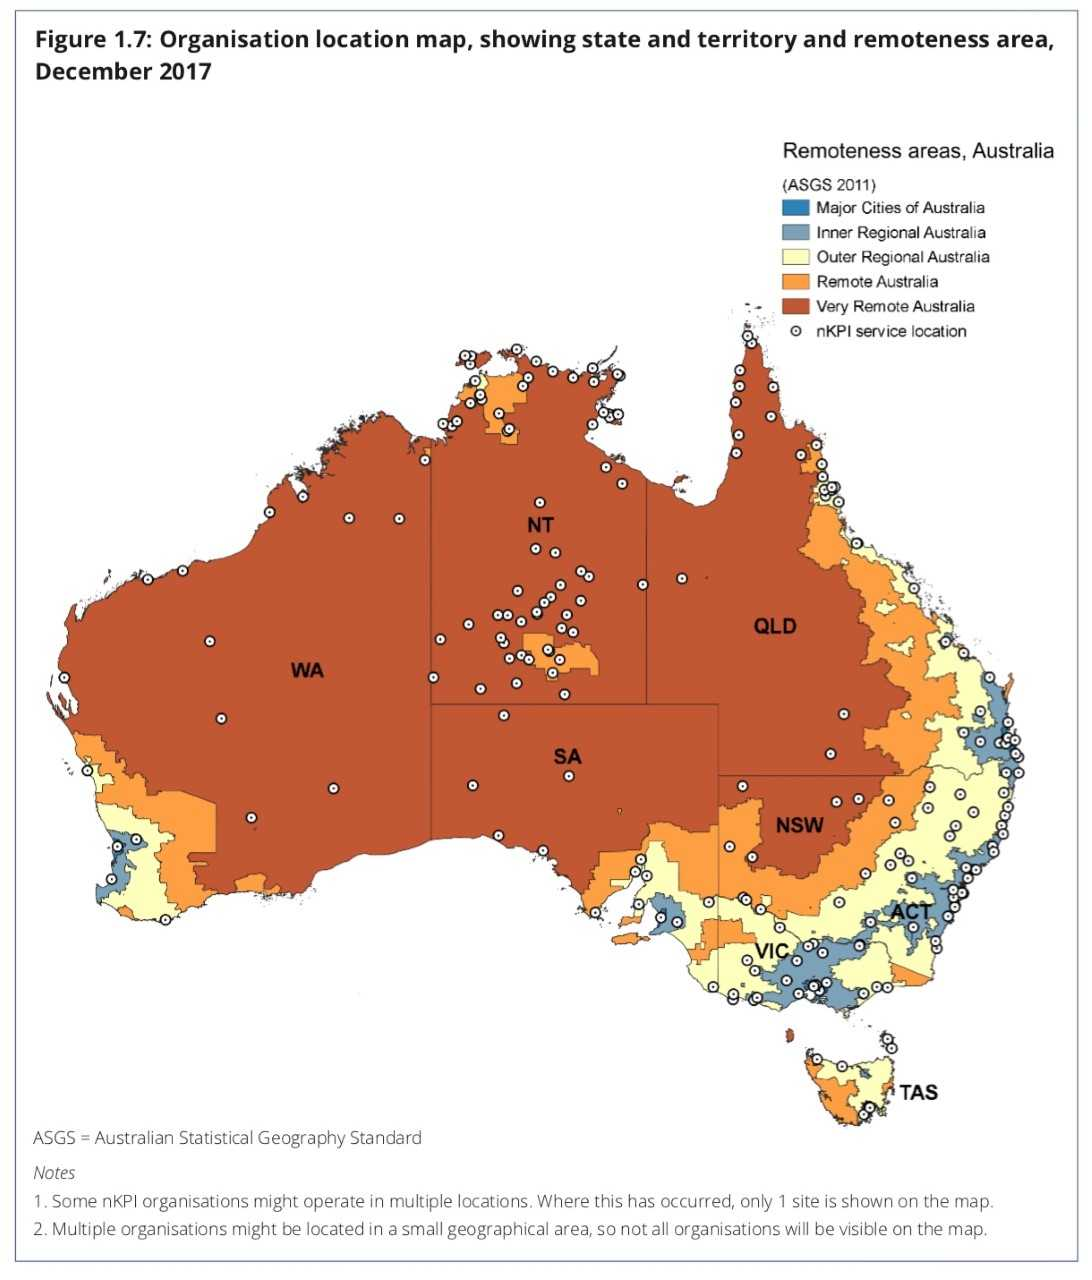 NACCHO Aboriginal Health and #refreshtheCTGRefresh : Download the @AIHW National Key Performance Indicators for Aboriginal and Torres Strait Islander primary health care: results for 2017 showing improvements in 16 out of a possible 23 measures